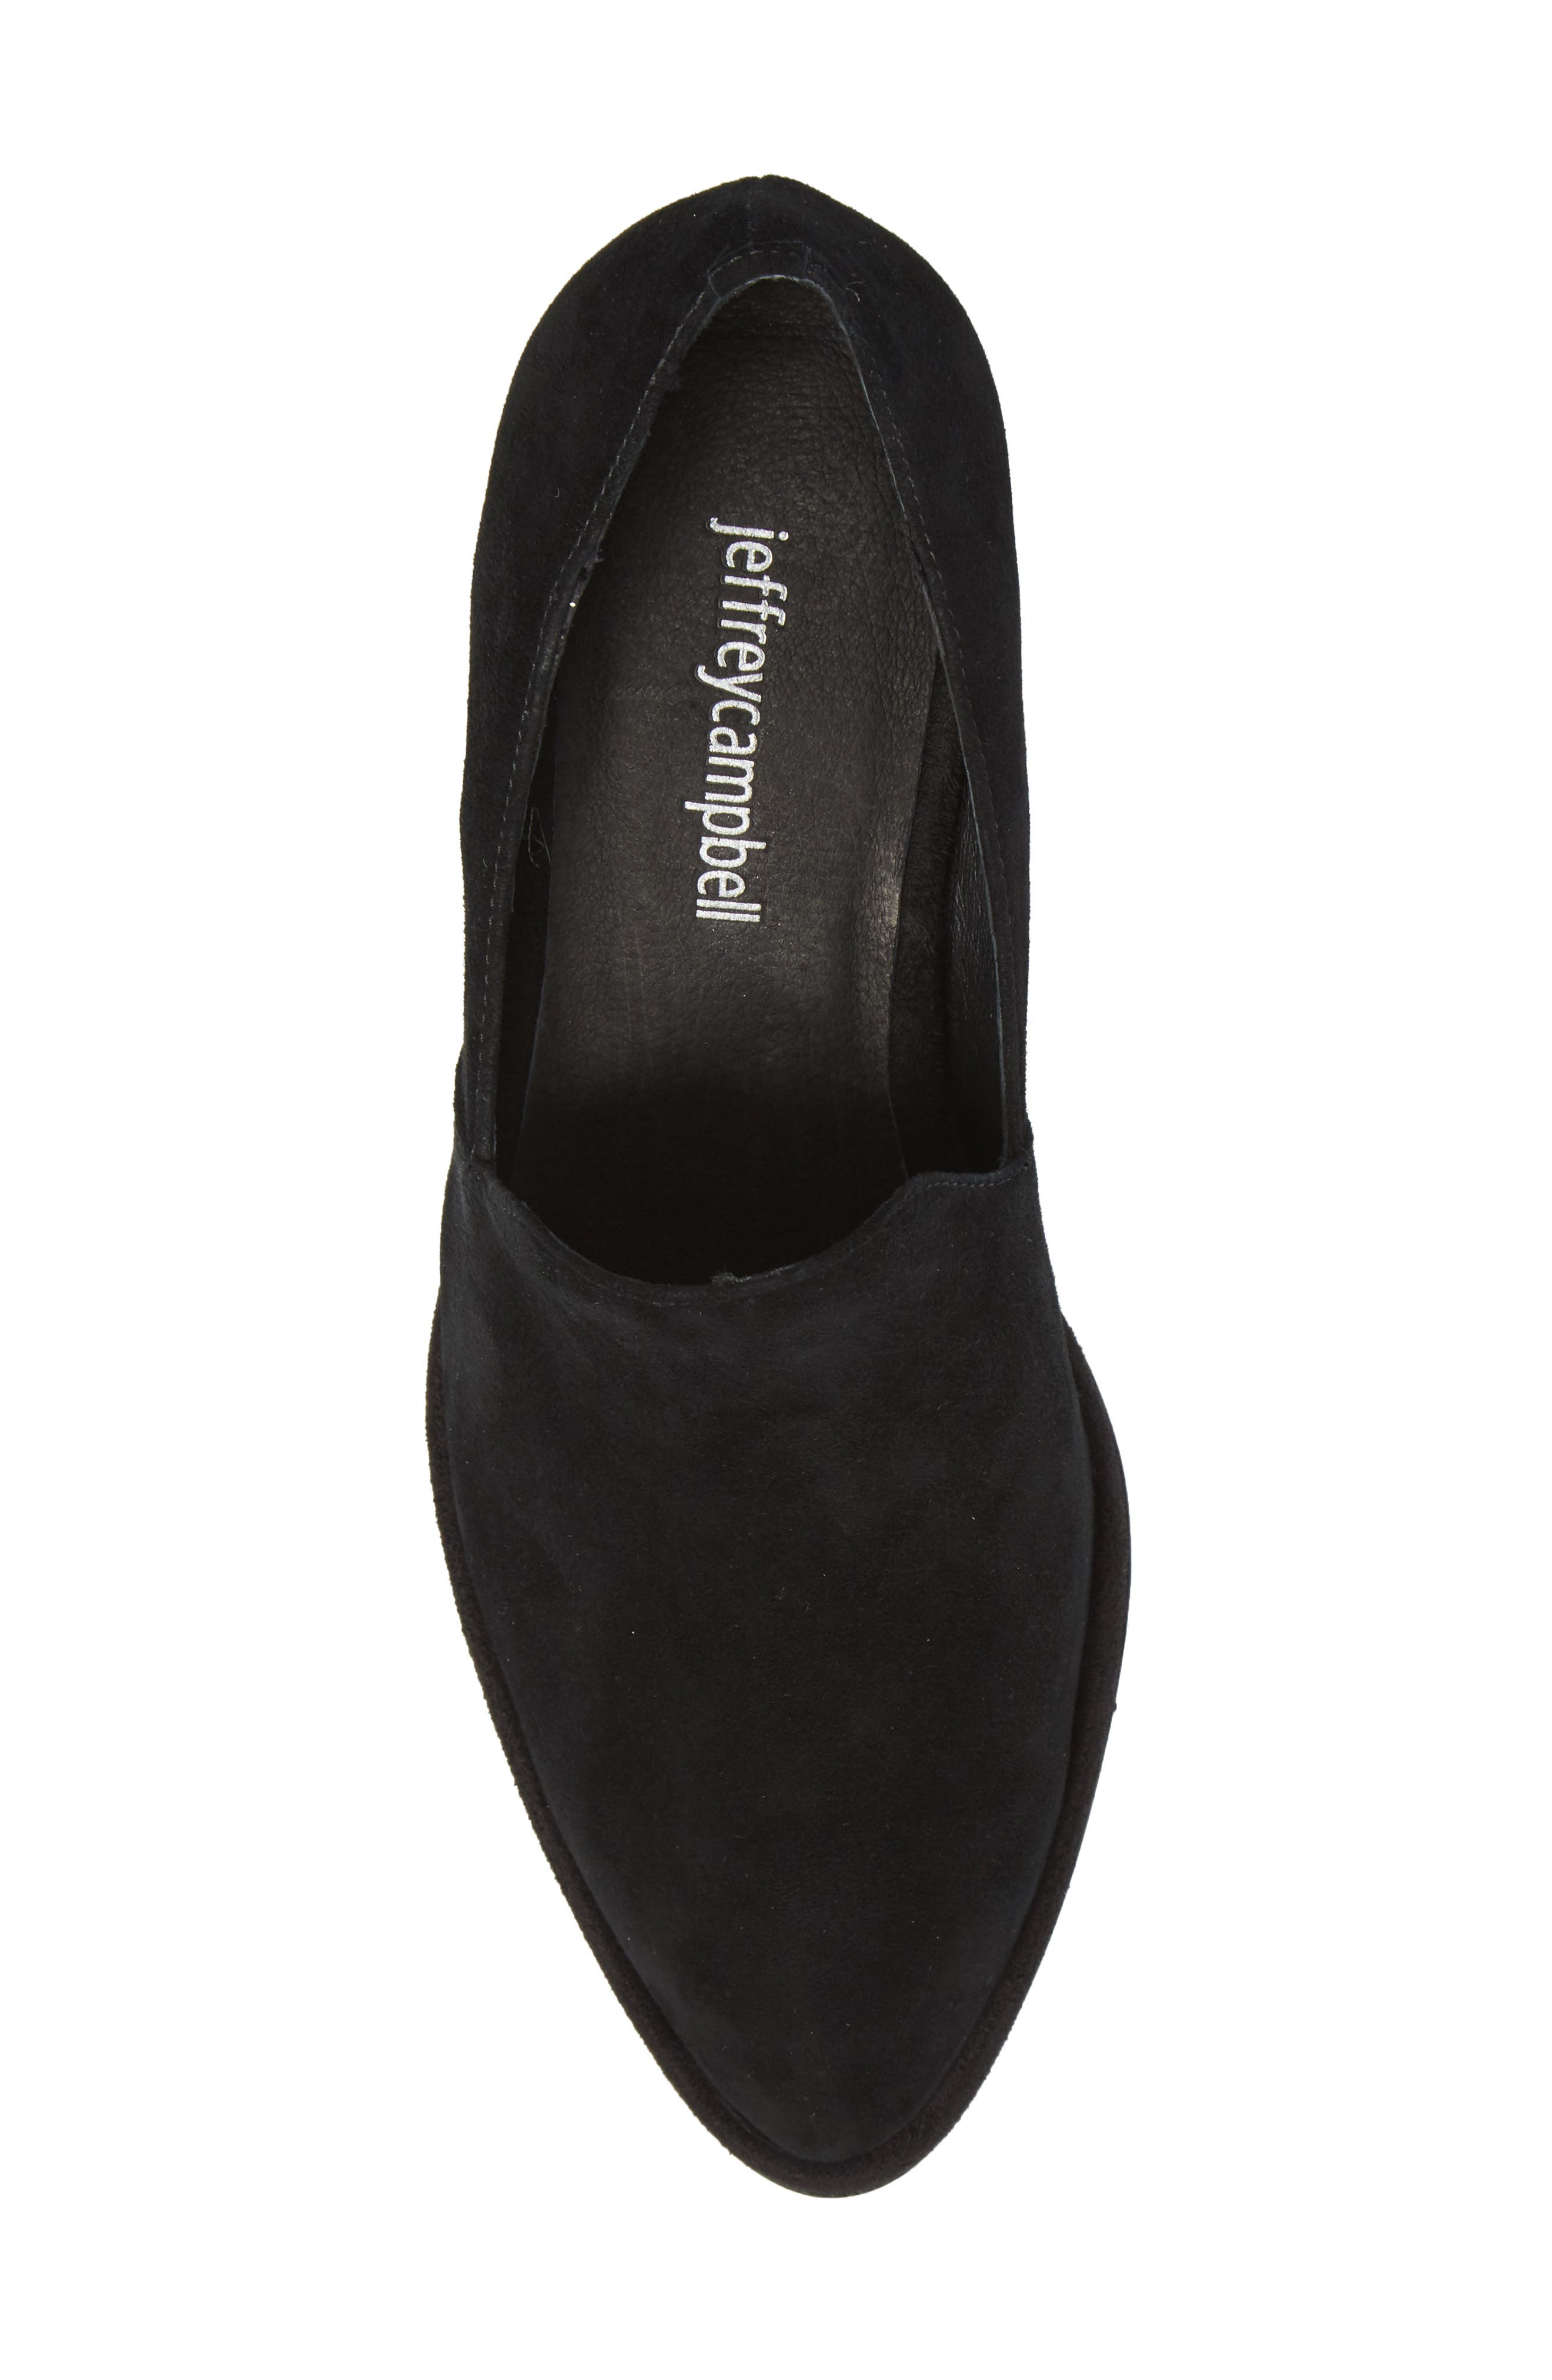 Serlin Jeweled Heel Loafer,                             Alternate thumbnail 5, color,                             Black Suede Bright Combo